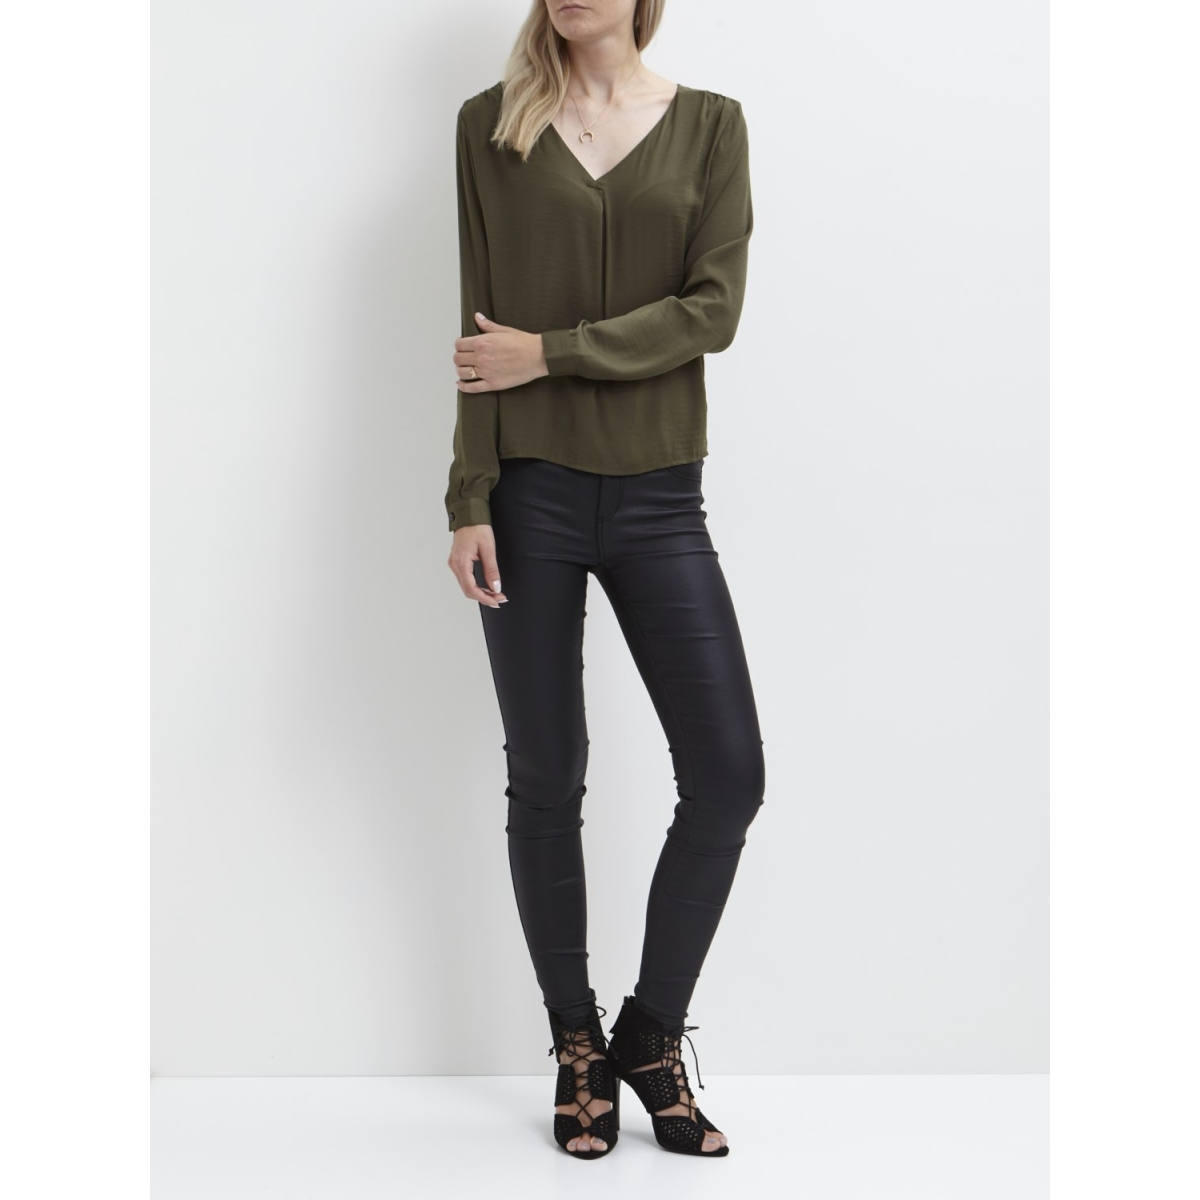 vimelli l/s new top-noos 14036767 vila blouse ivy green